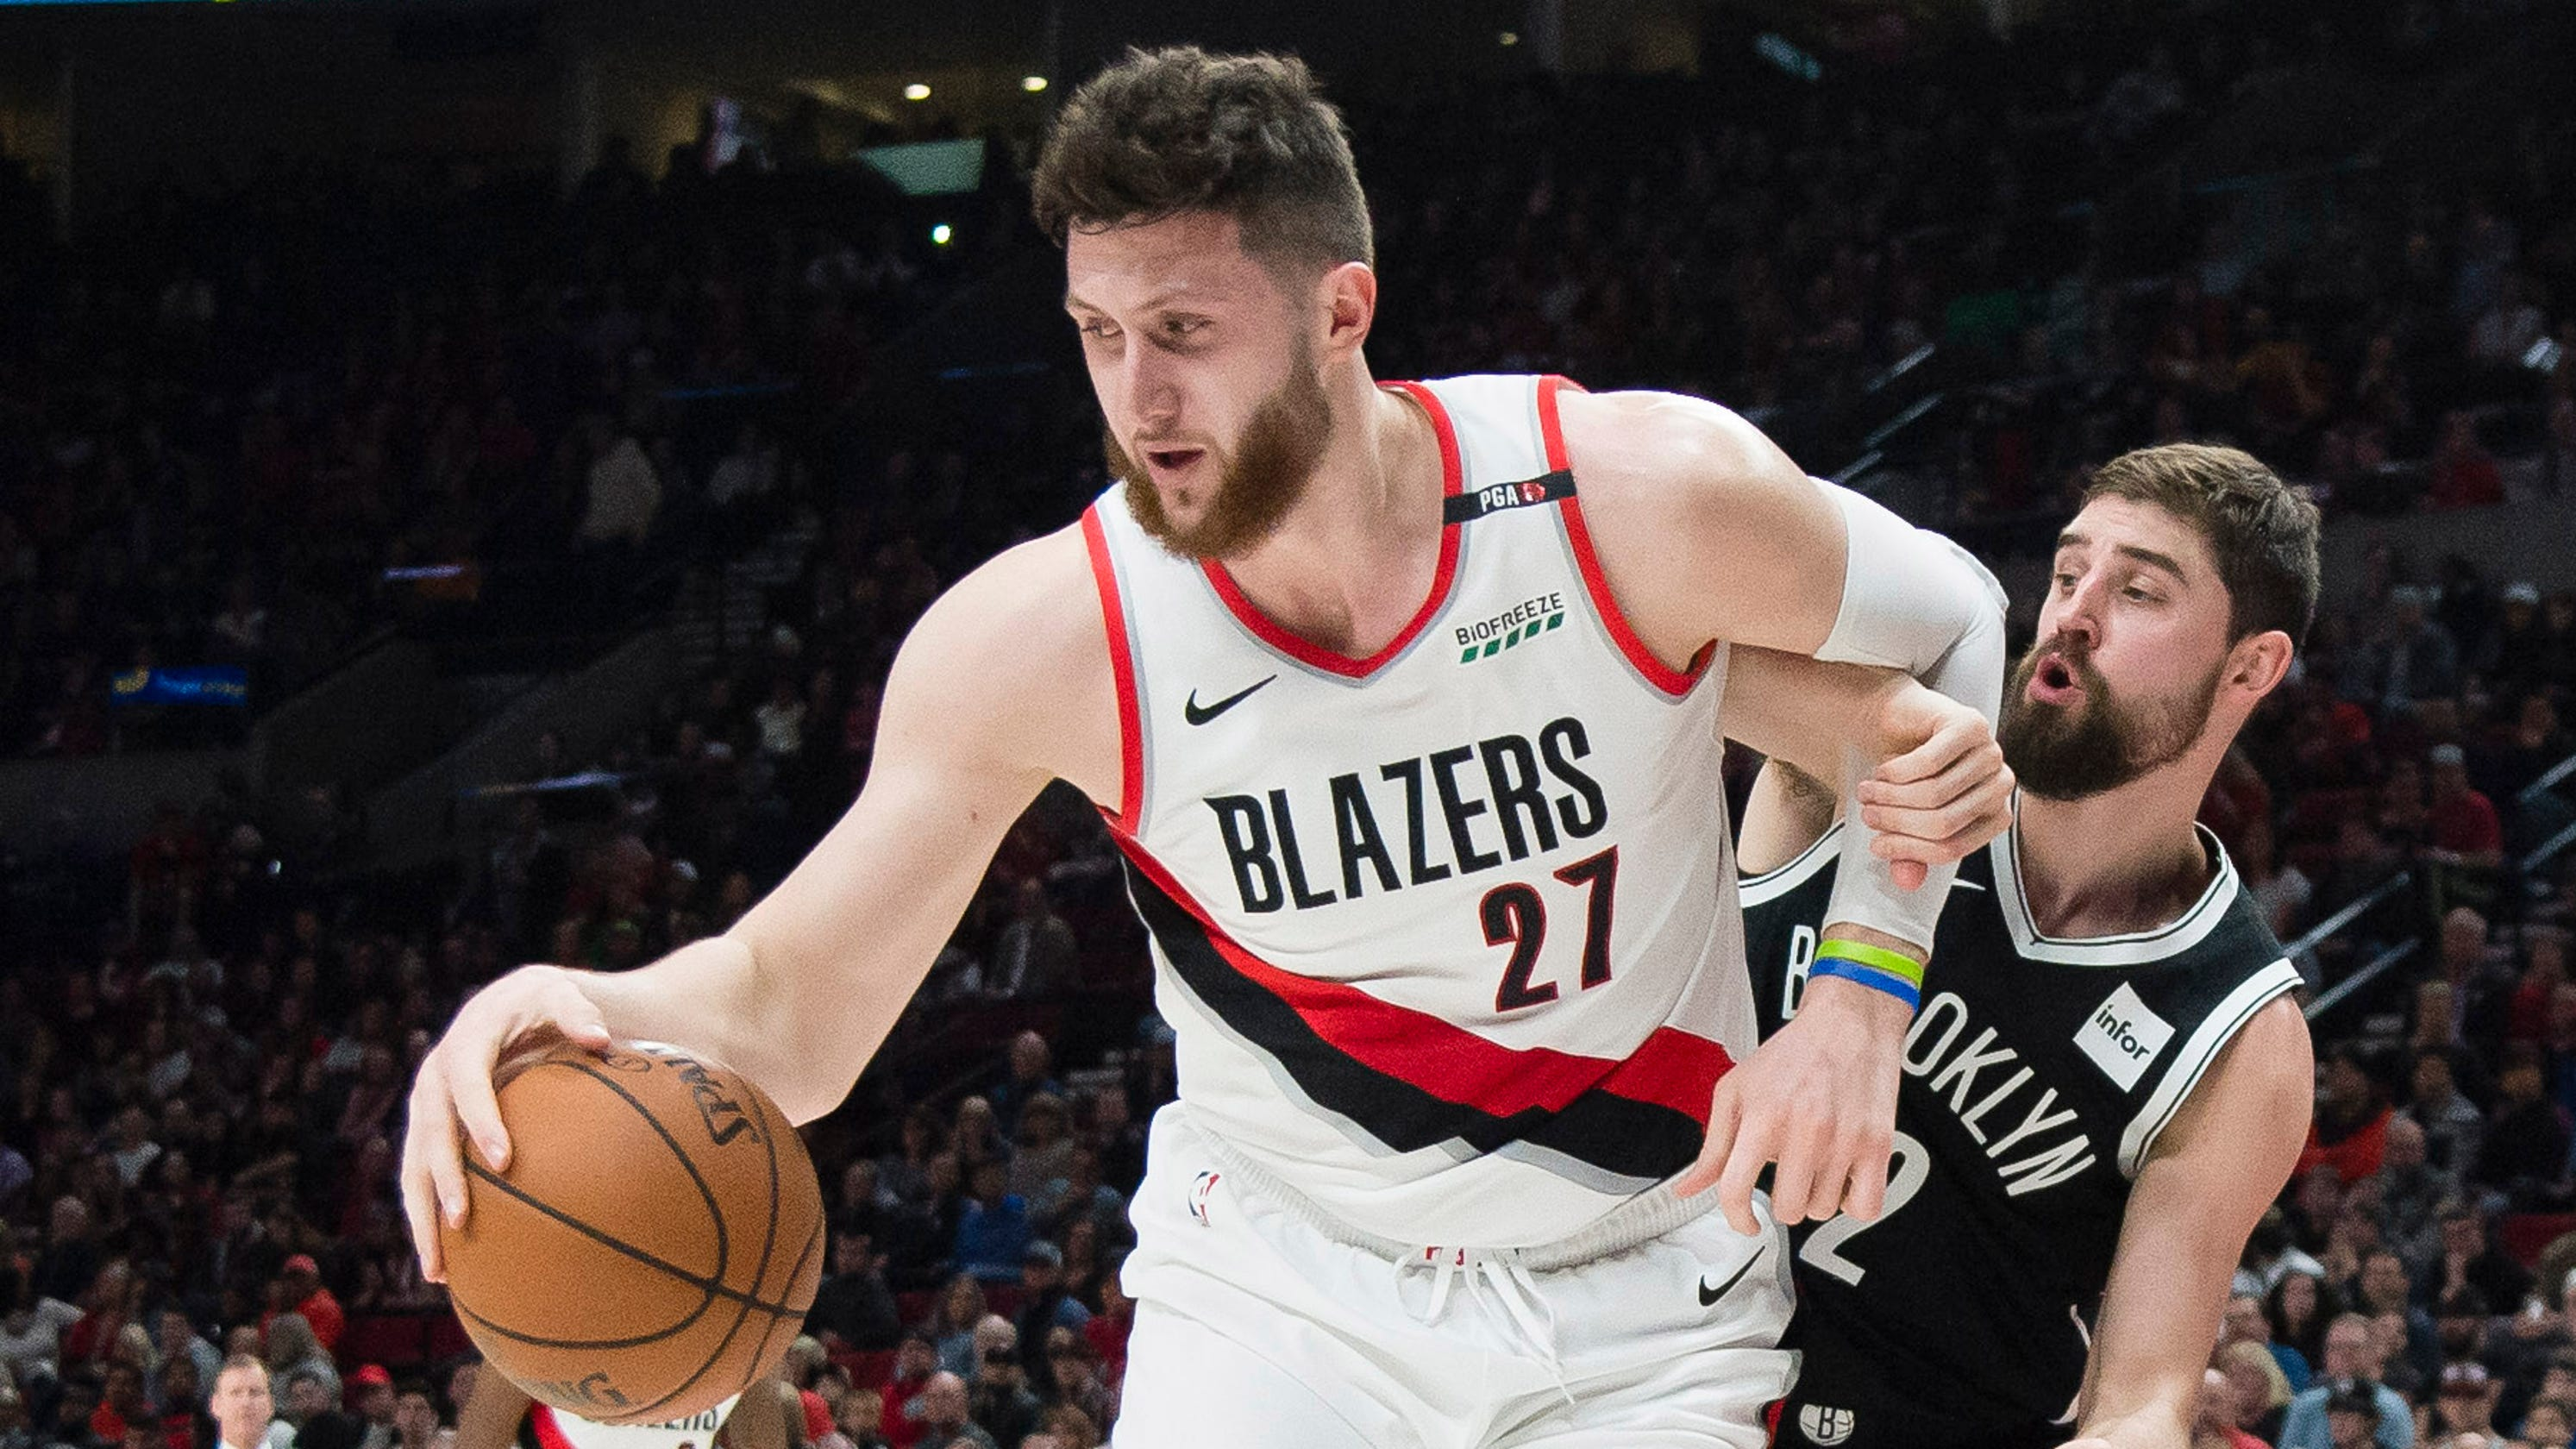 Jusuf Nurkic Ethnicity, Race, Religion, and Nationality